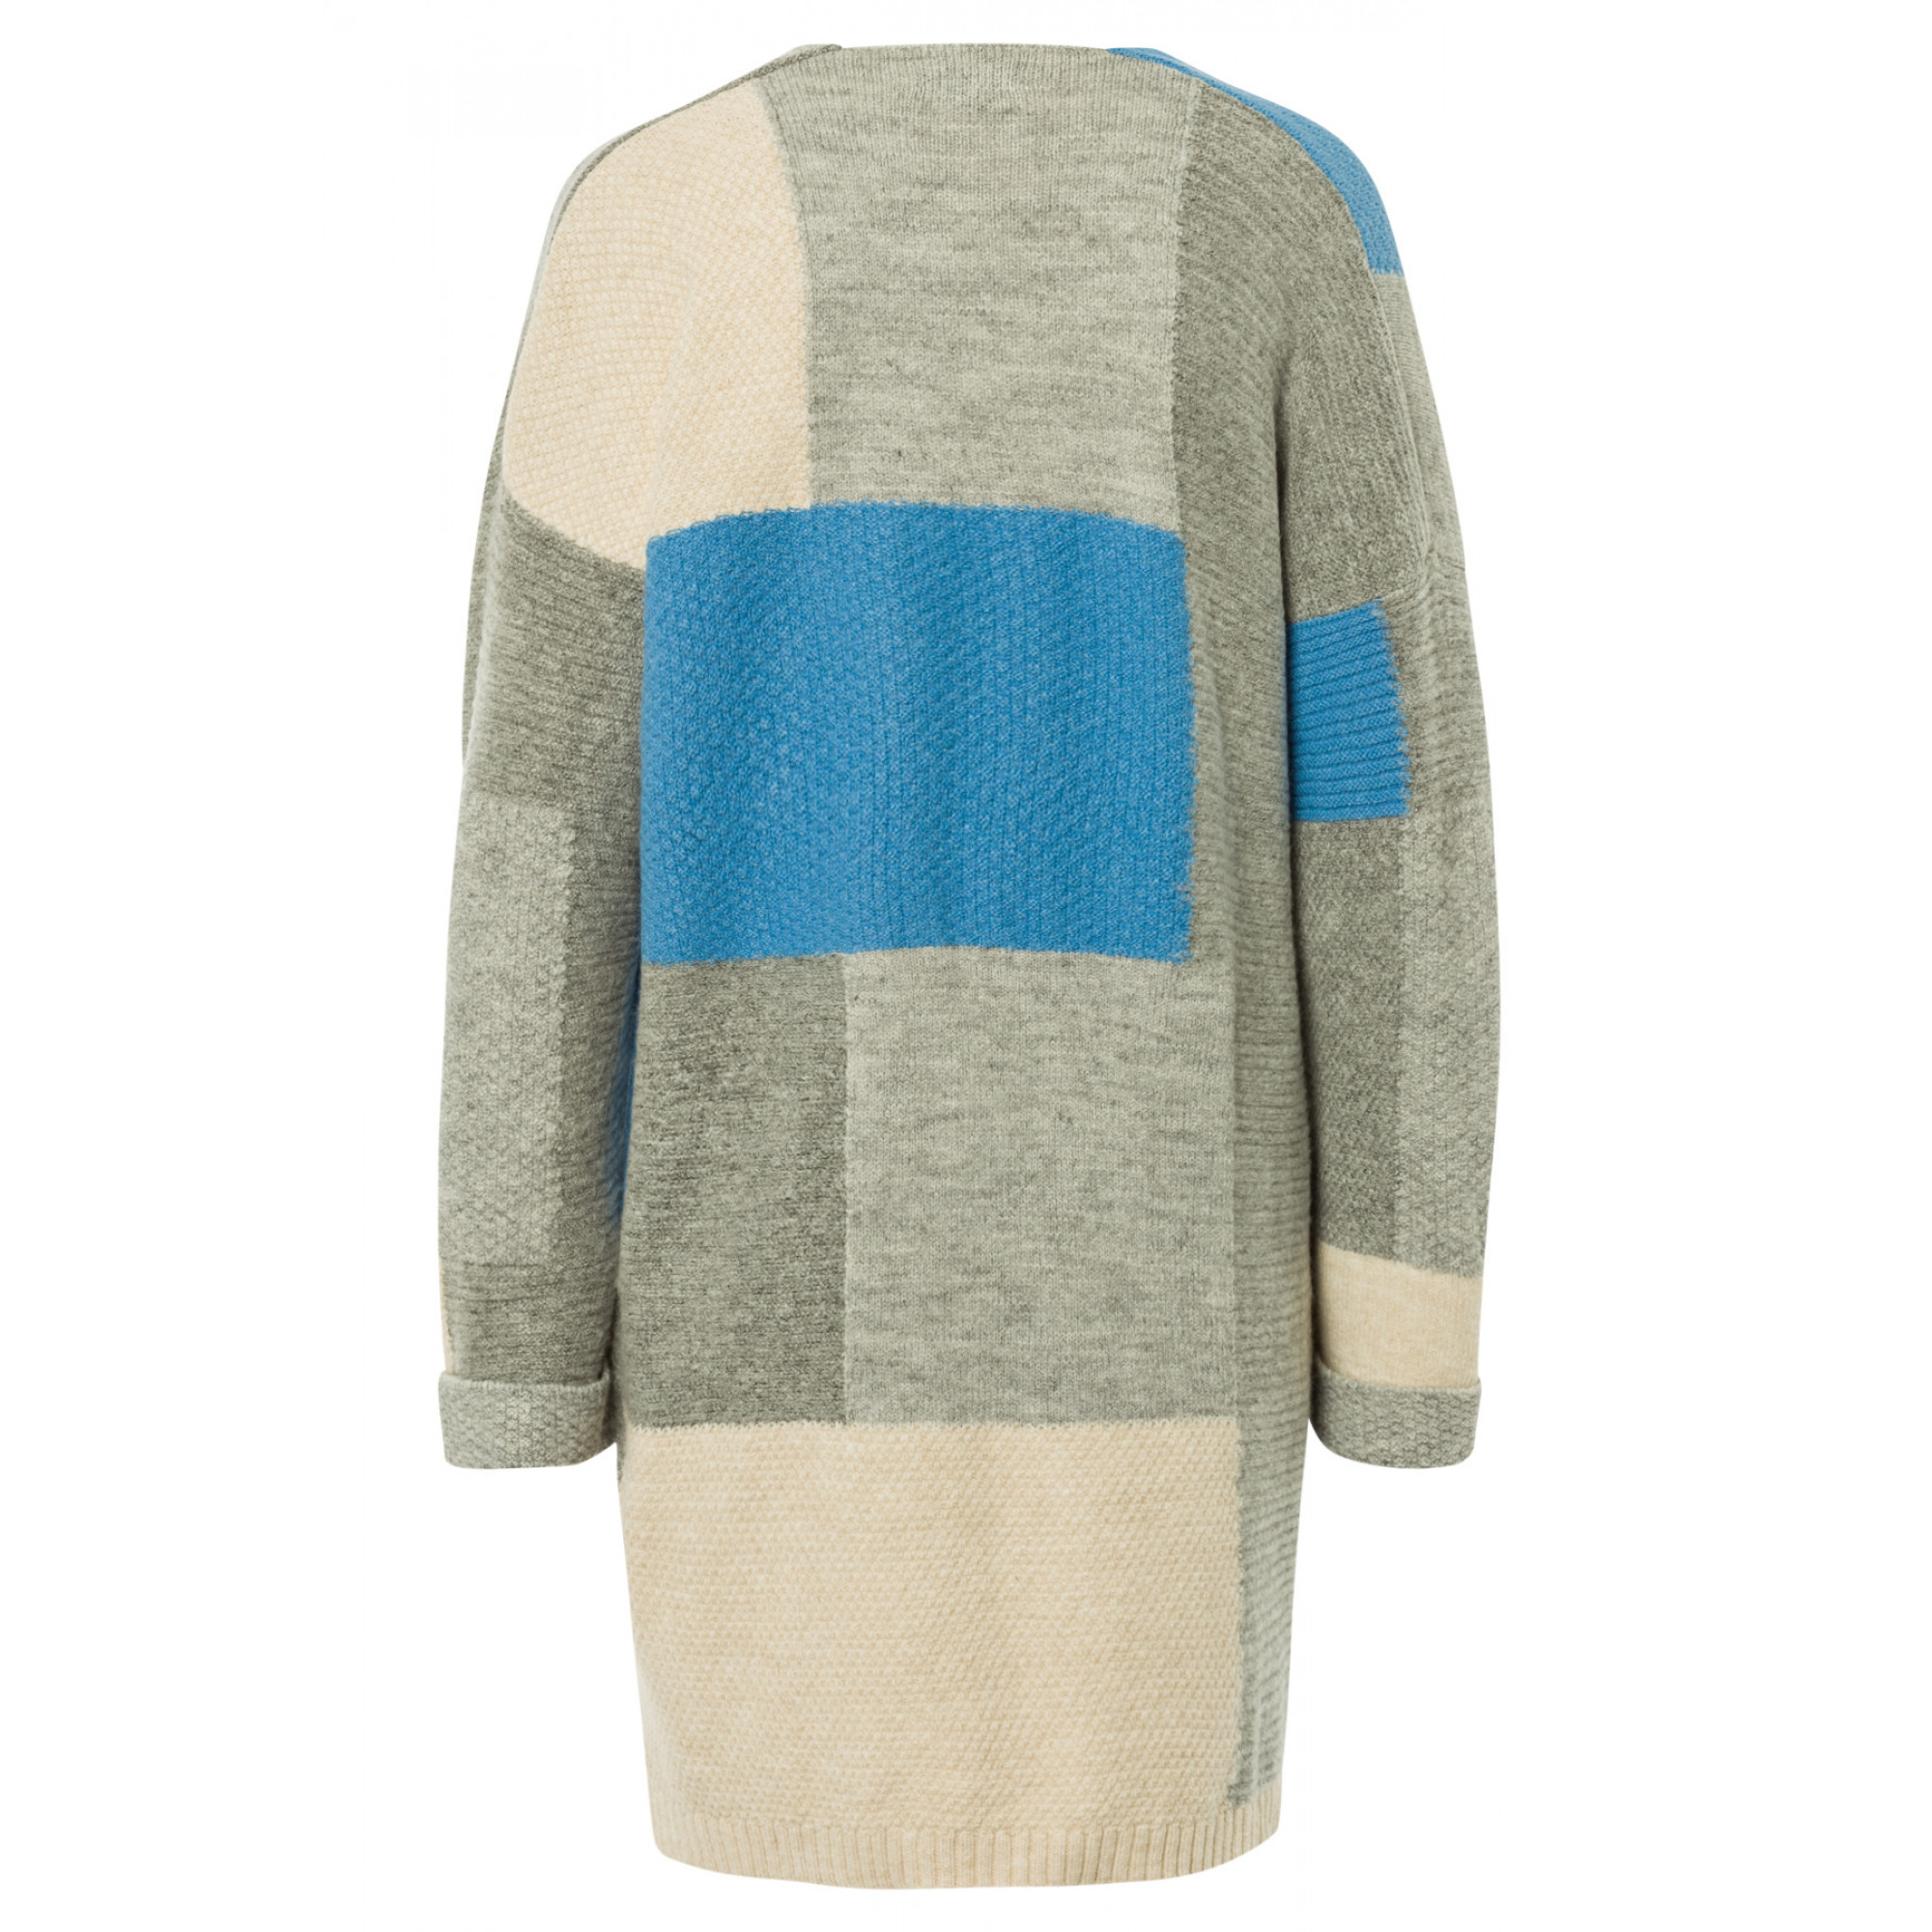 Cardigan, Colorblock 91111212-4717 2